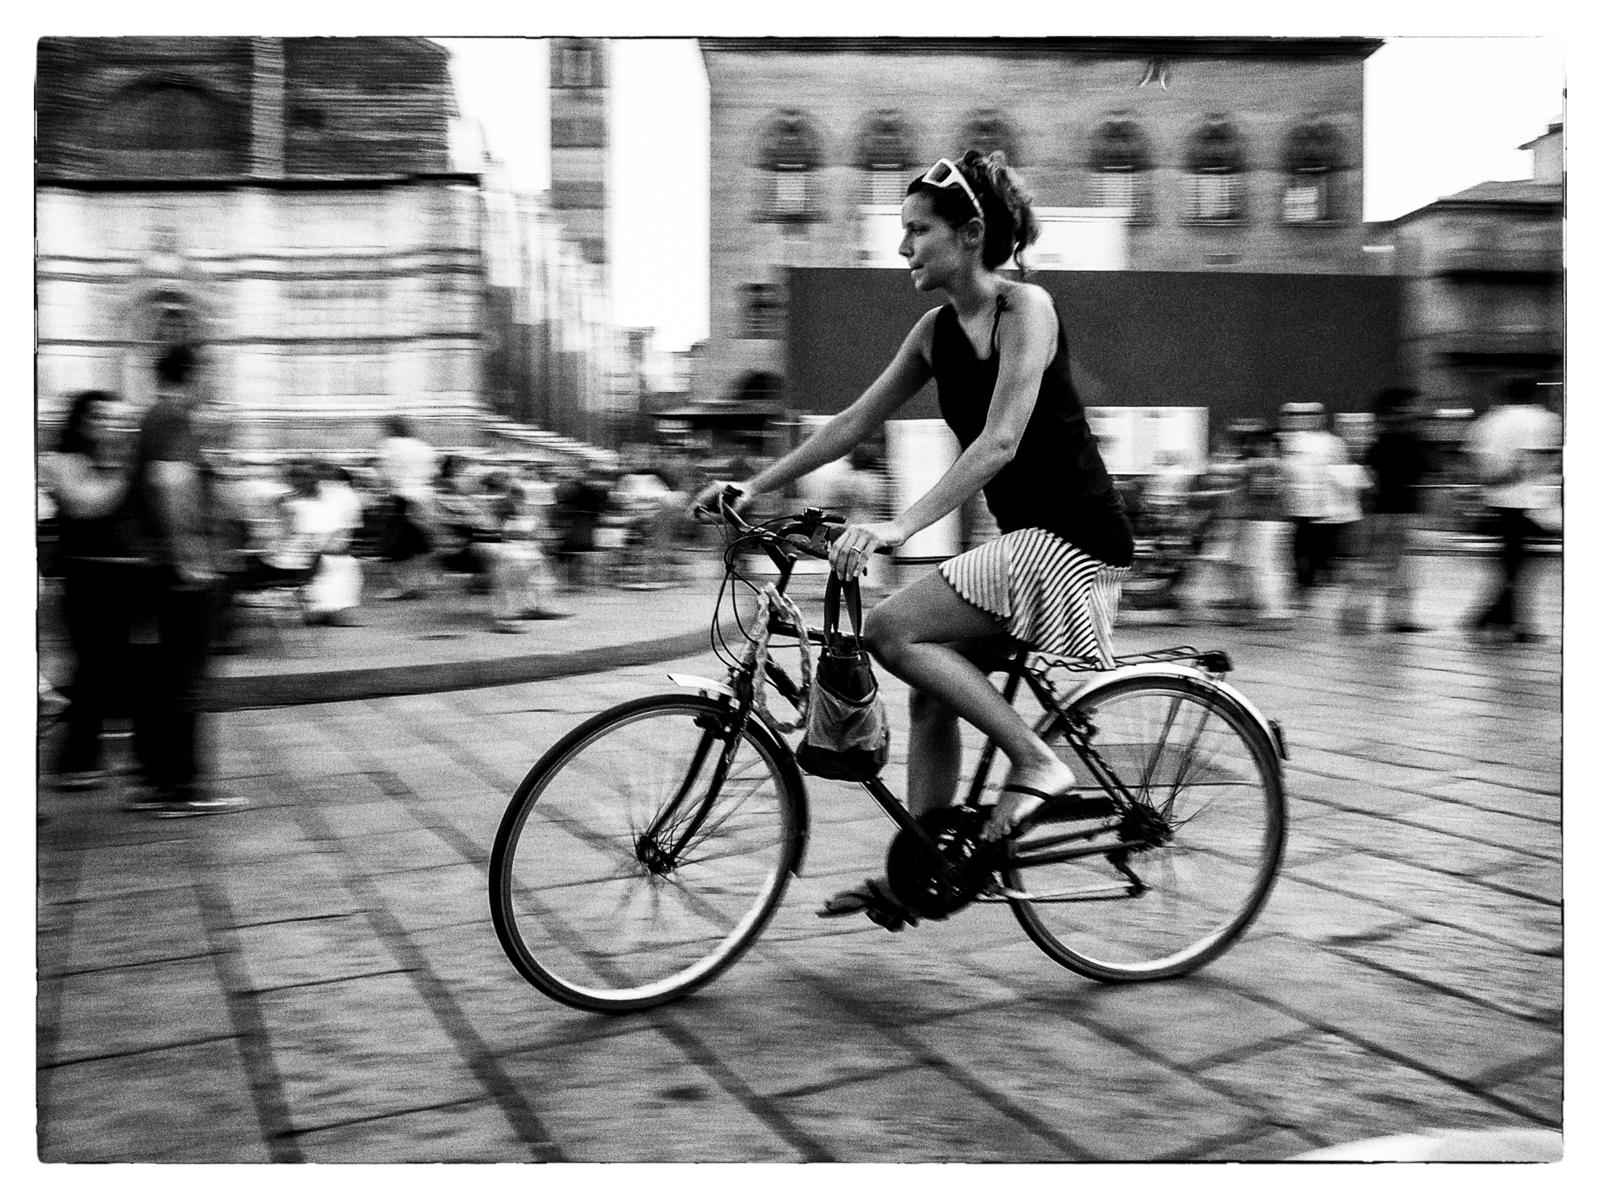 Commuter, Bologna : street & stories : TIMOTHY FLOYD PHOTOGRAPHER, NATURE PHOTOGRAPHY, PHOTO ESSAYS, PHOTOJOURNALISM